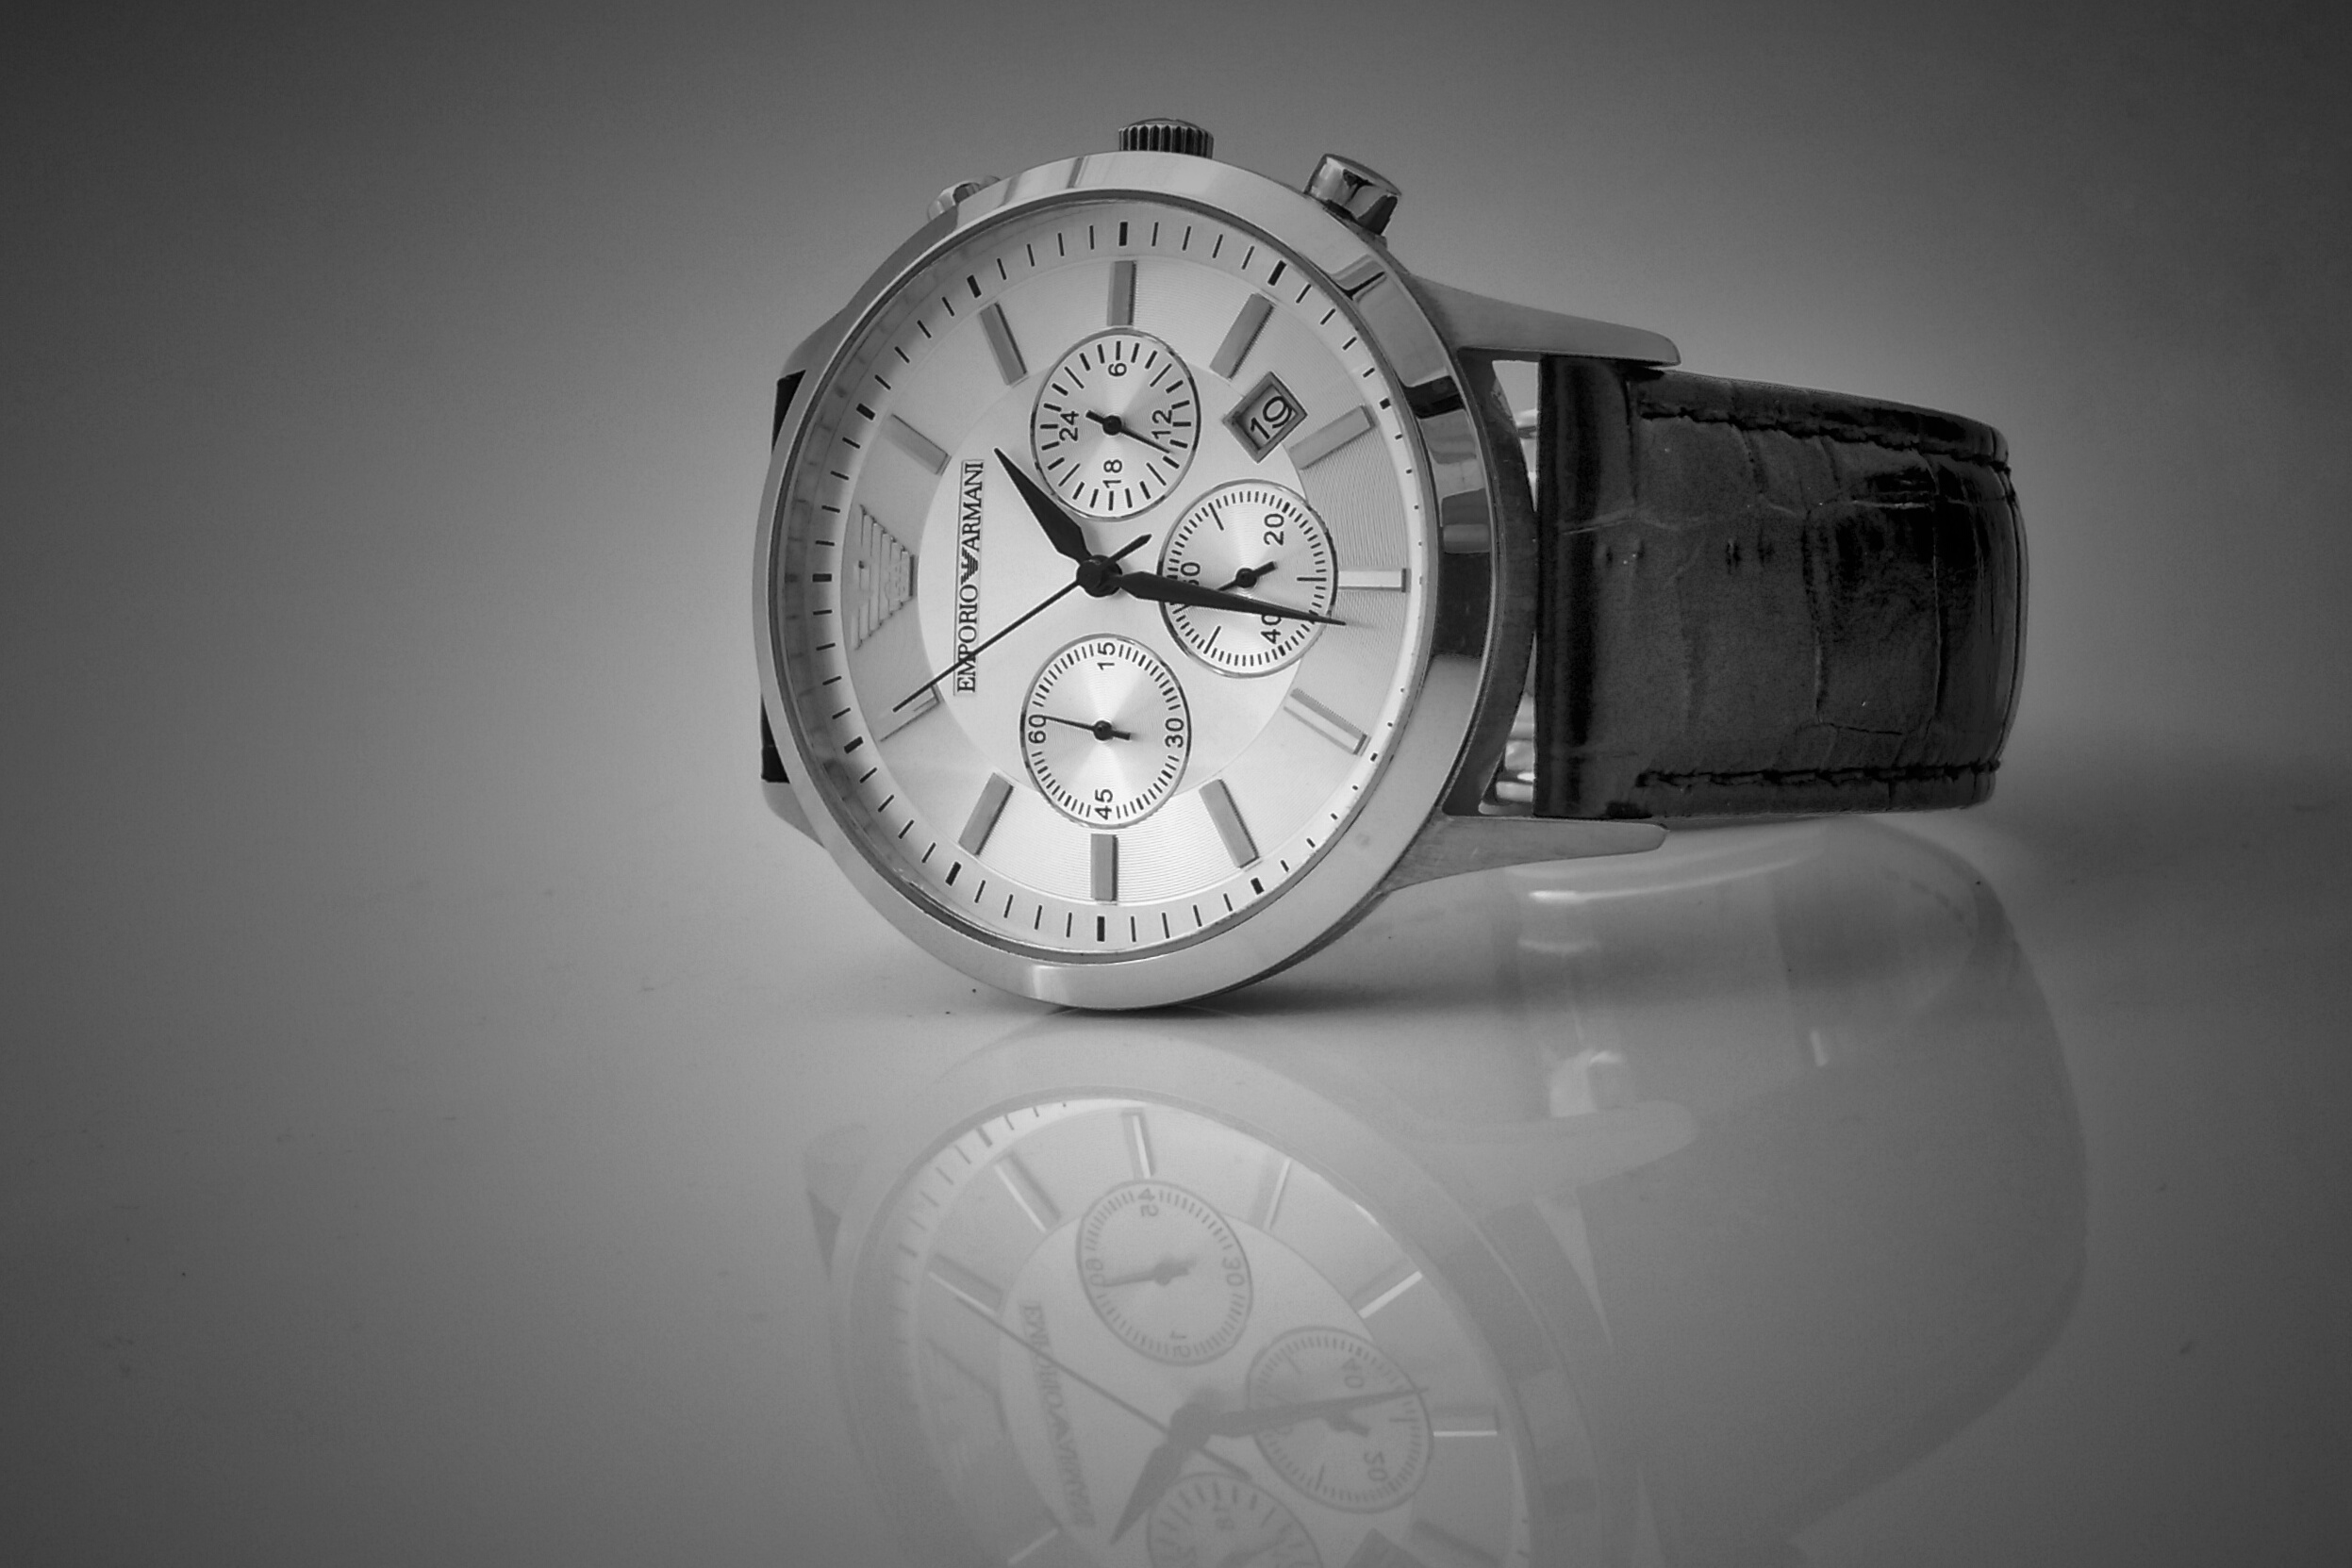 black-leather-strap-silver-chronograph-watch-125779